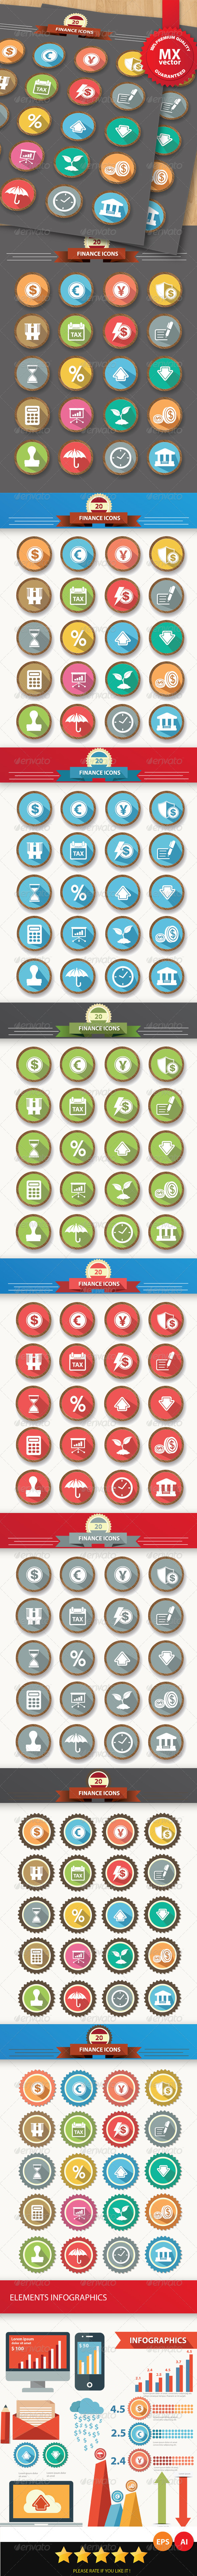 GraphicRiver Finance Concept Icons 6418308